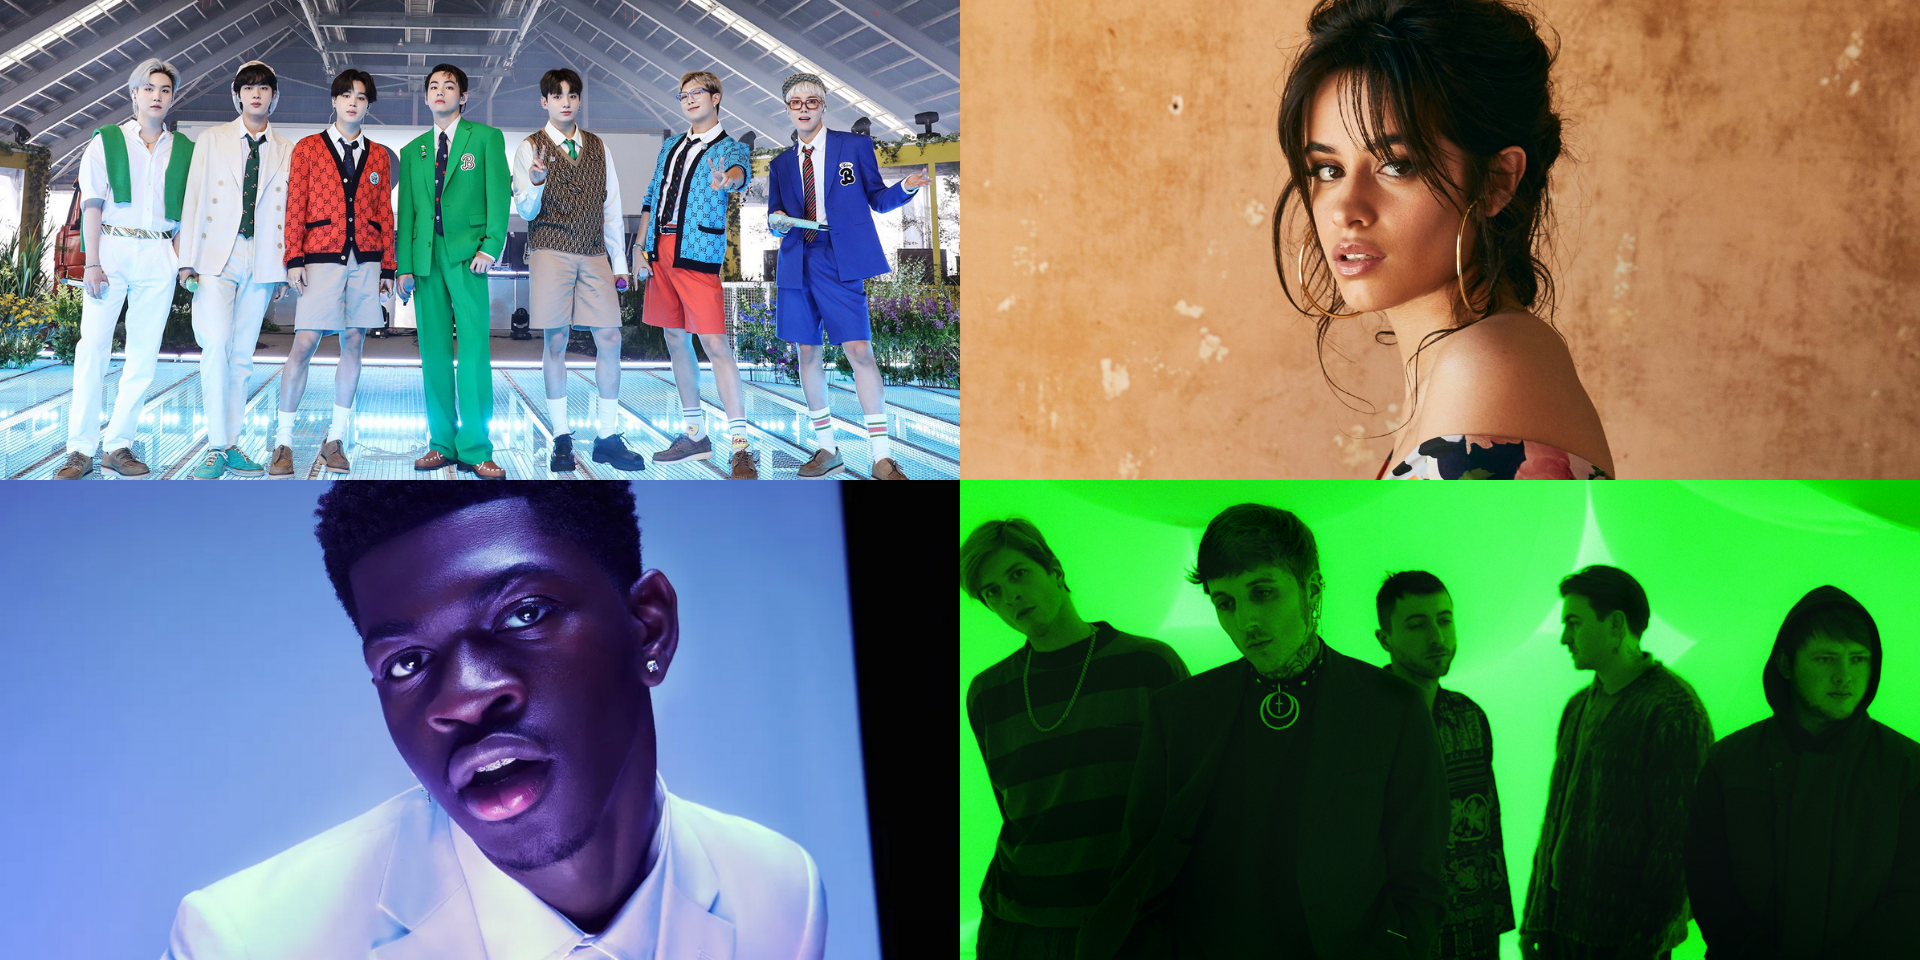 BBC Radio 1 Live Lounge to air 'Butter' performance by BTS, plus sets by Lil Nas X, Camila Cabello, Bring Me The Horizon, and more this September